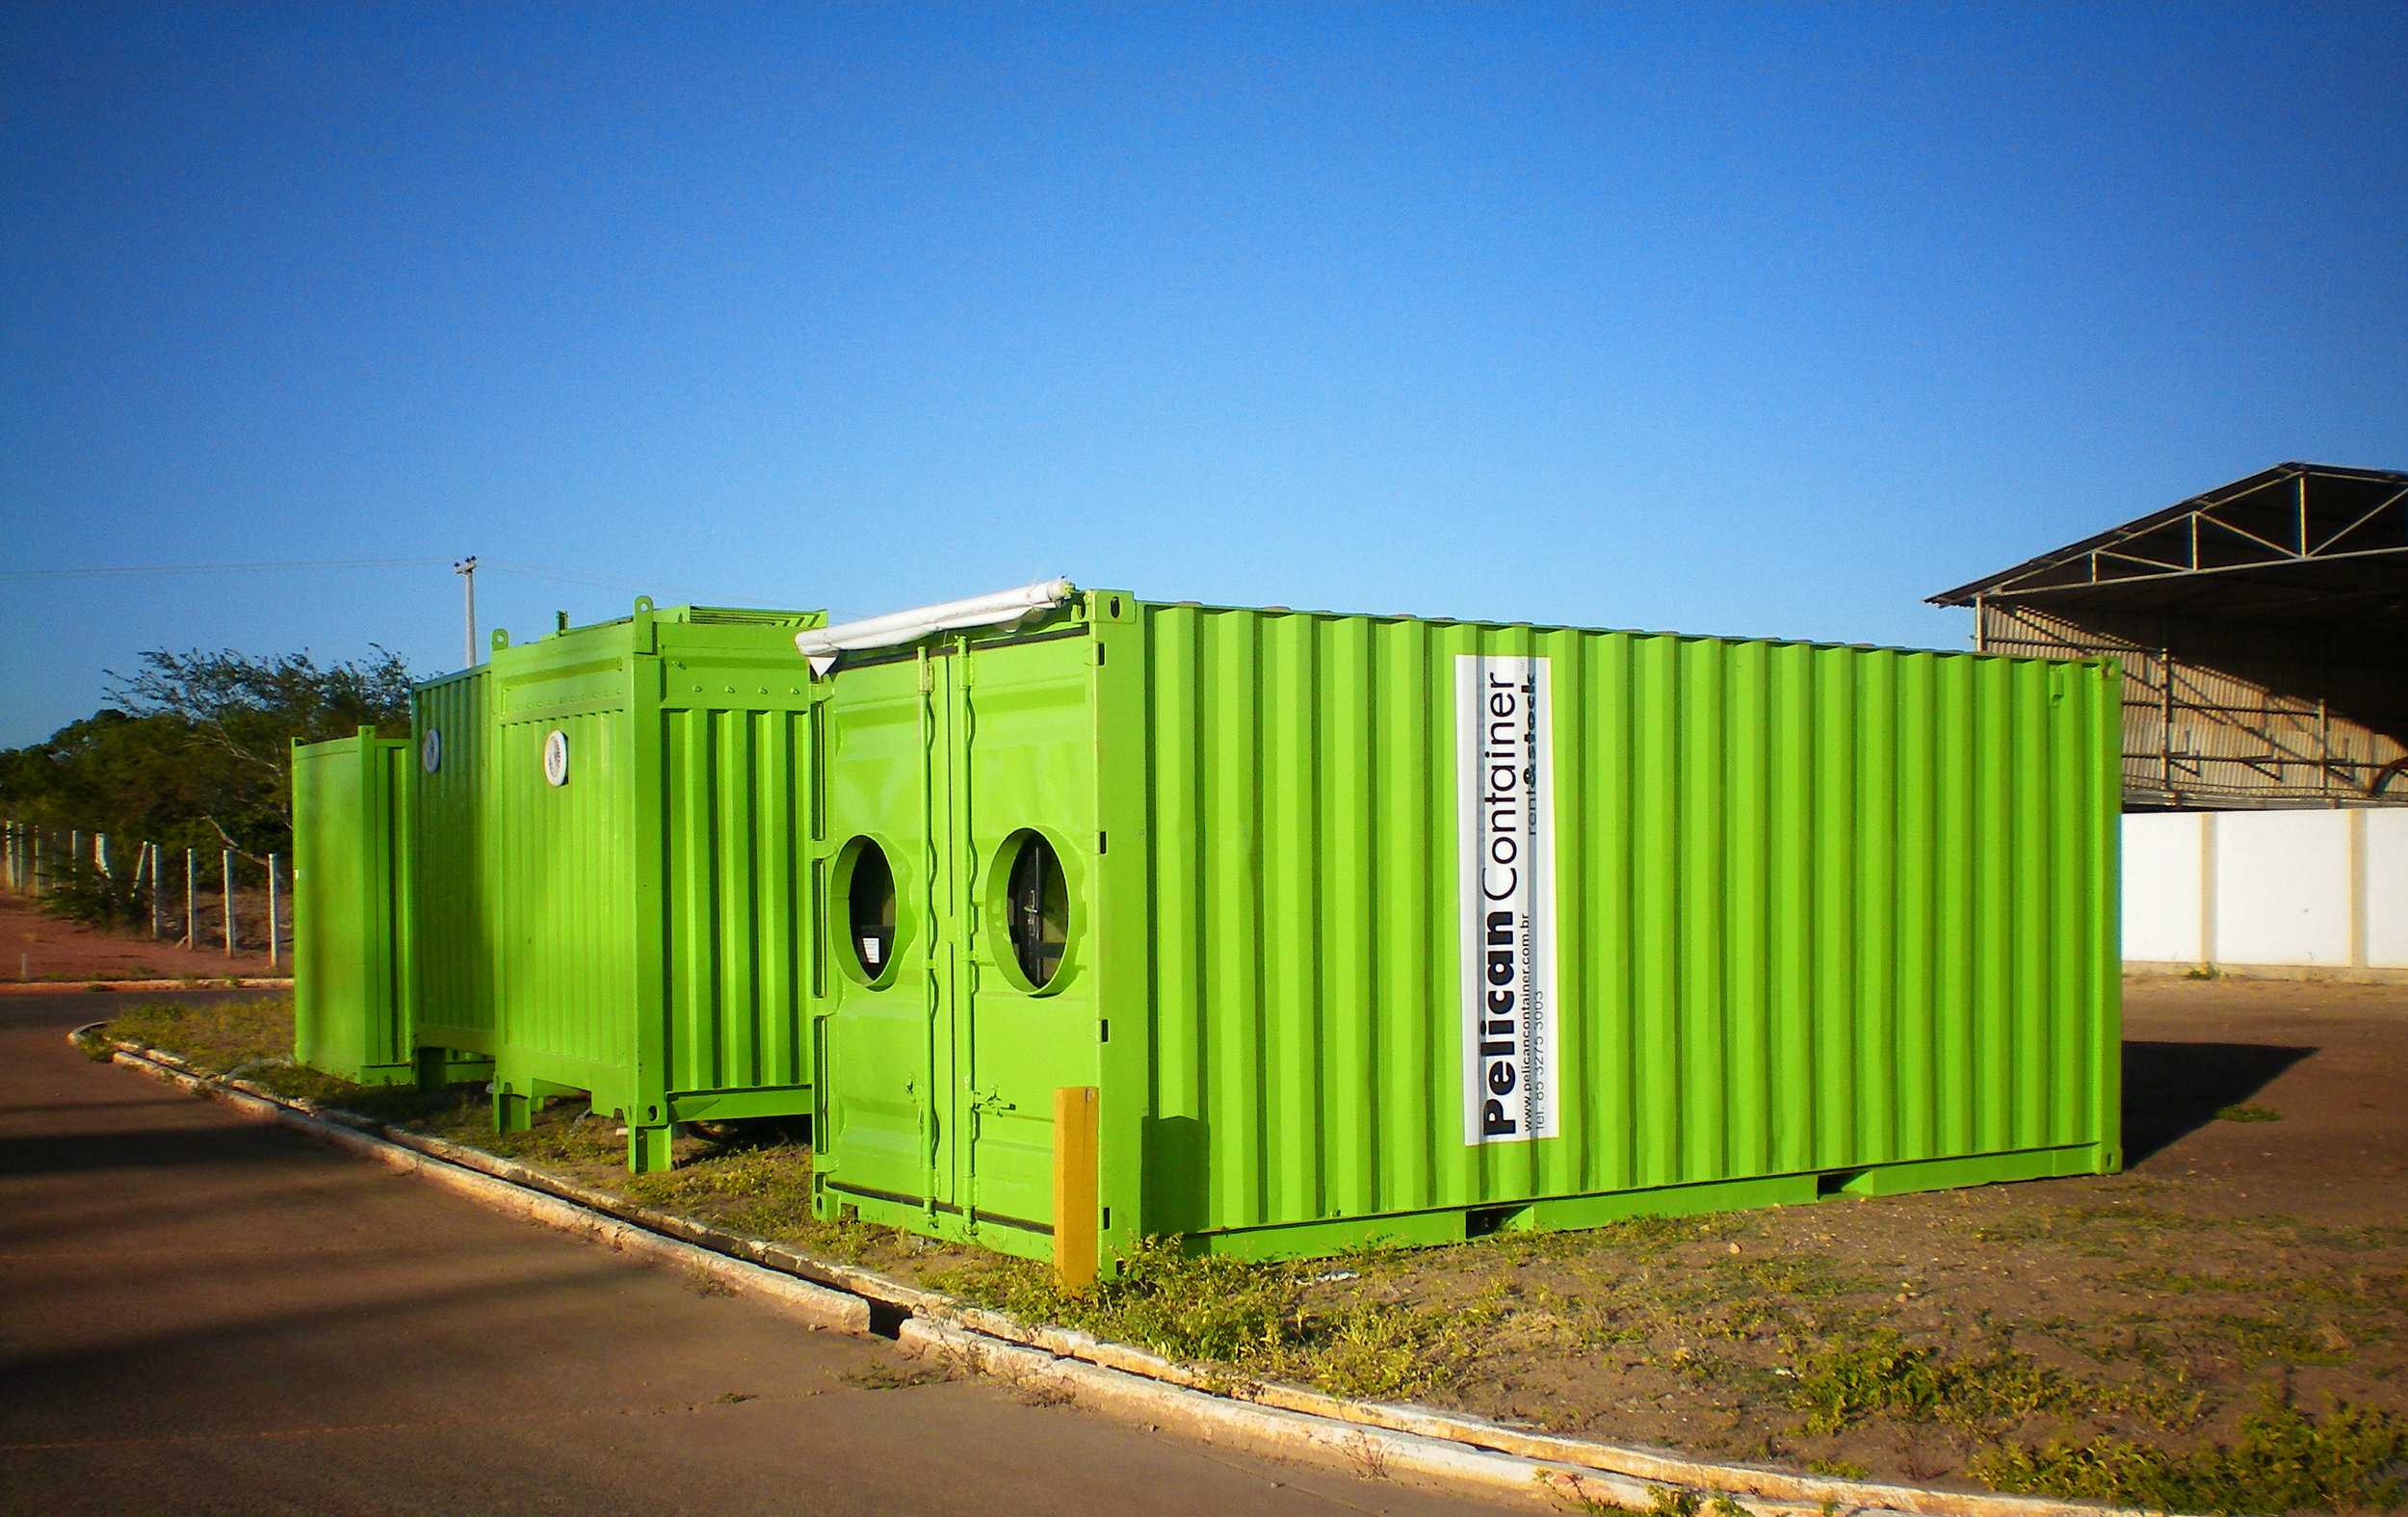 container_7_campo.jpg